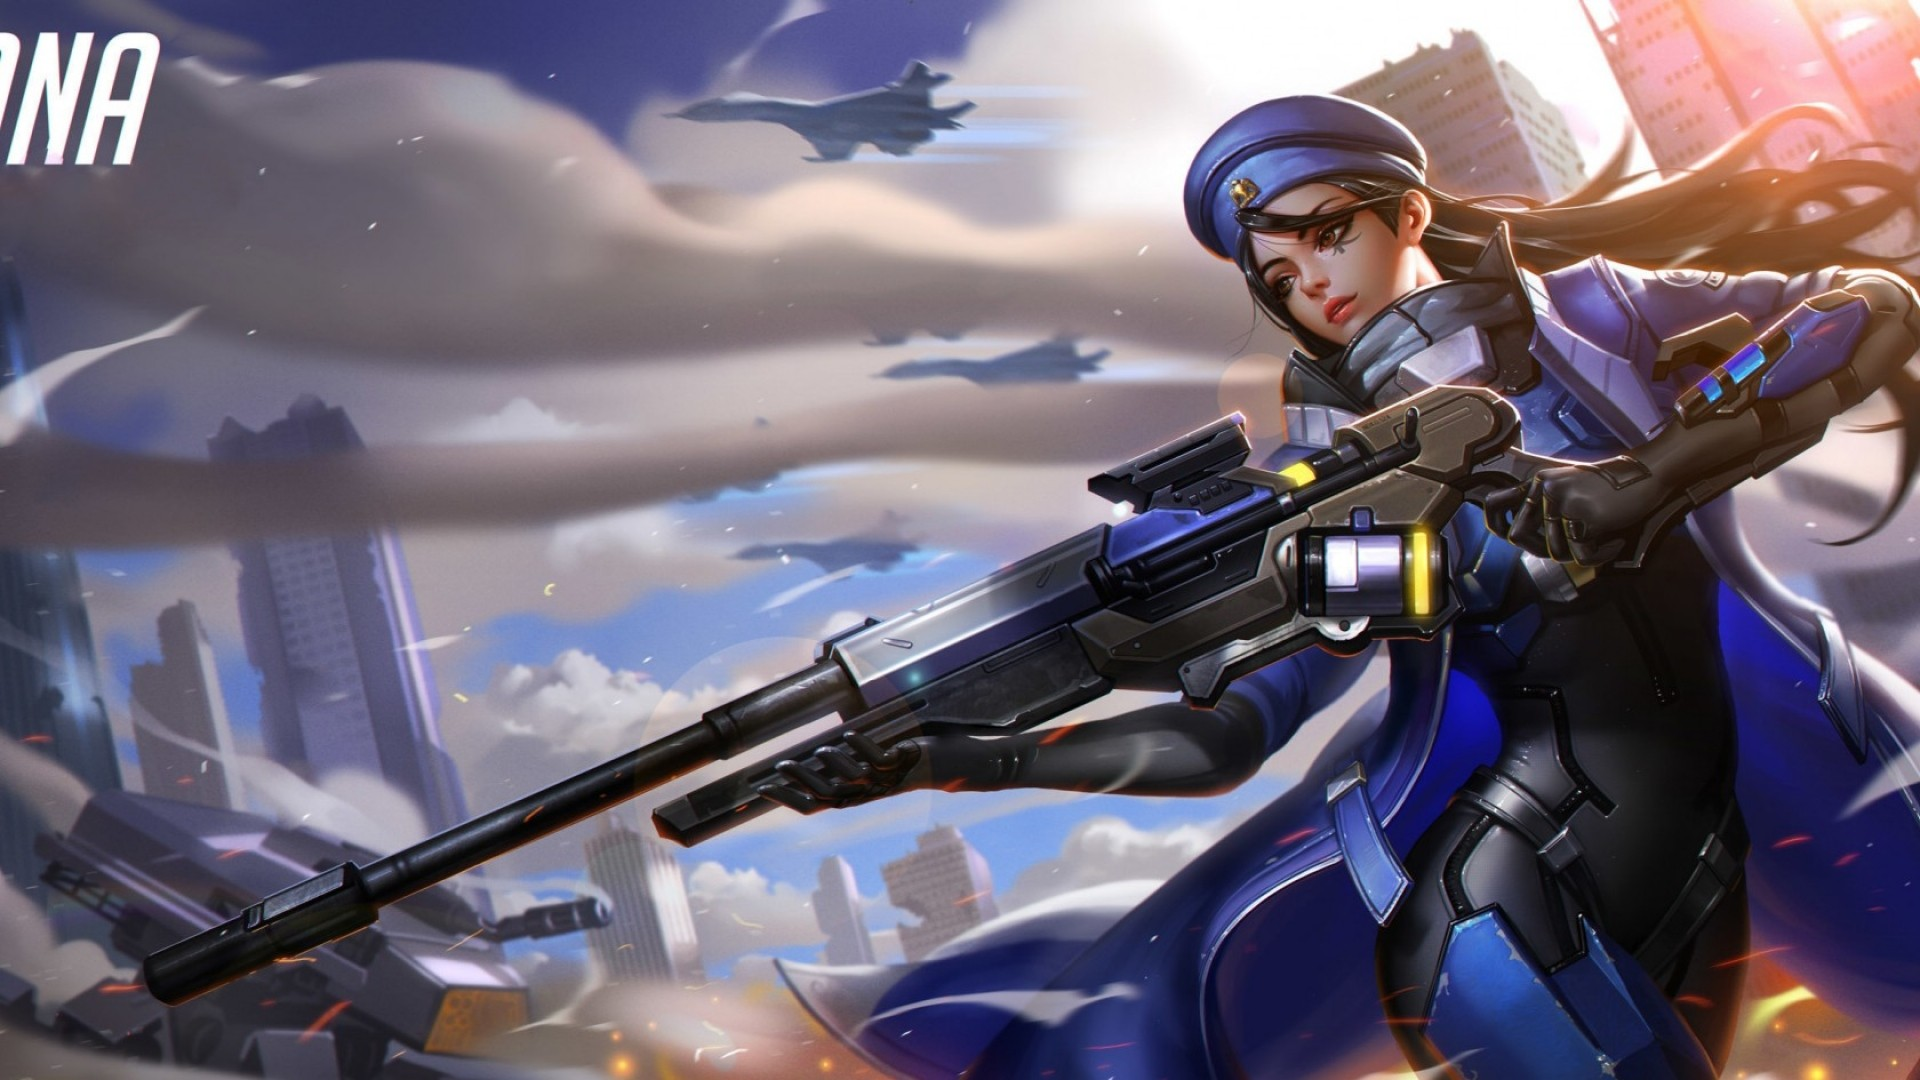 Fall Watch Wallpapers Overwatch Wallpaper 1080p 183 ① Download Free Cool High